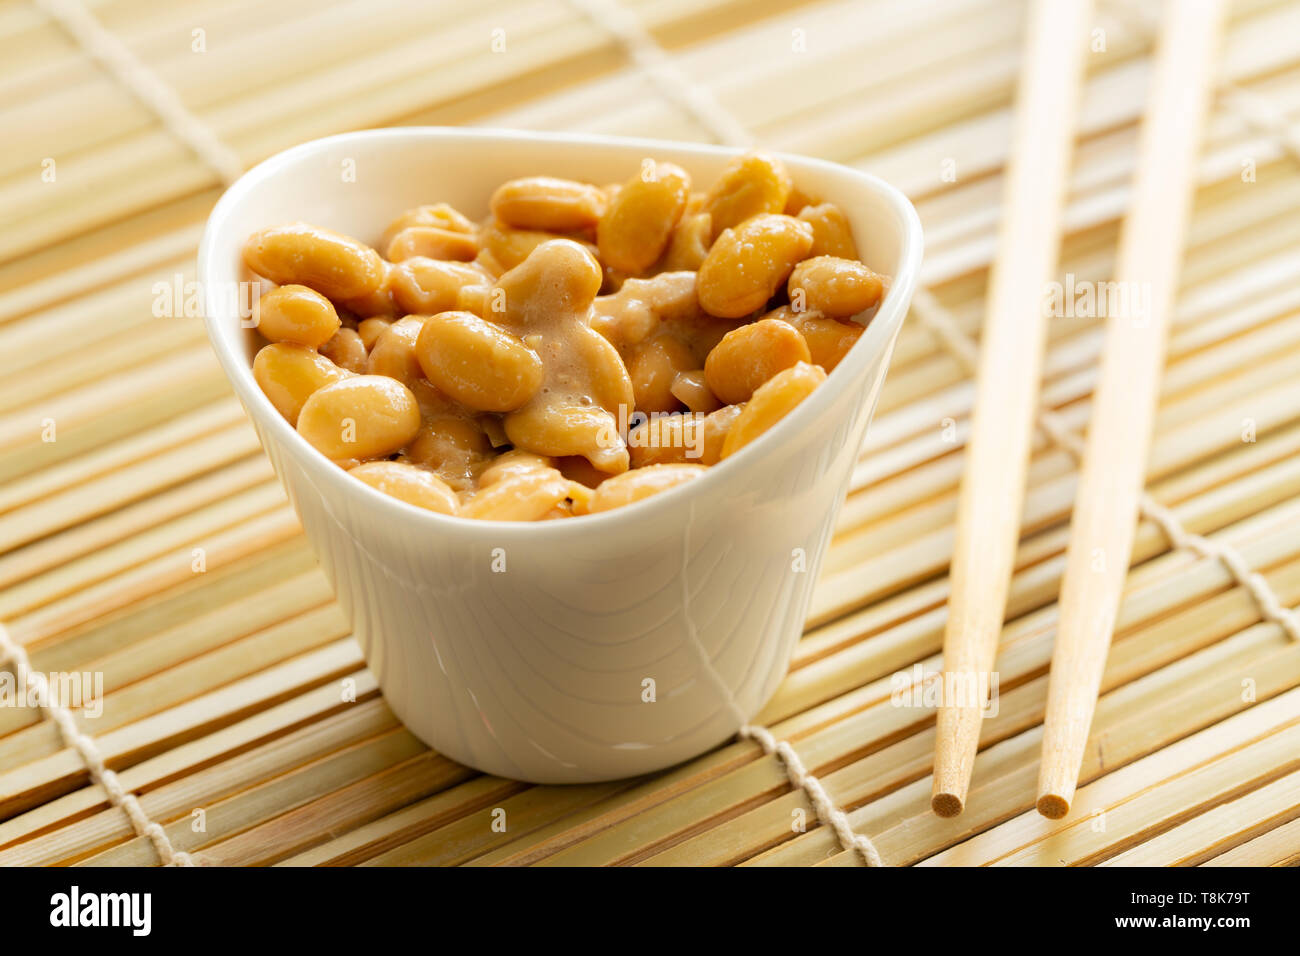 Eating healthy traditional japanese fermented soybeans called natto with chopsticks Stock Photo